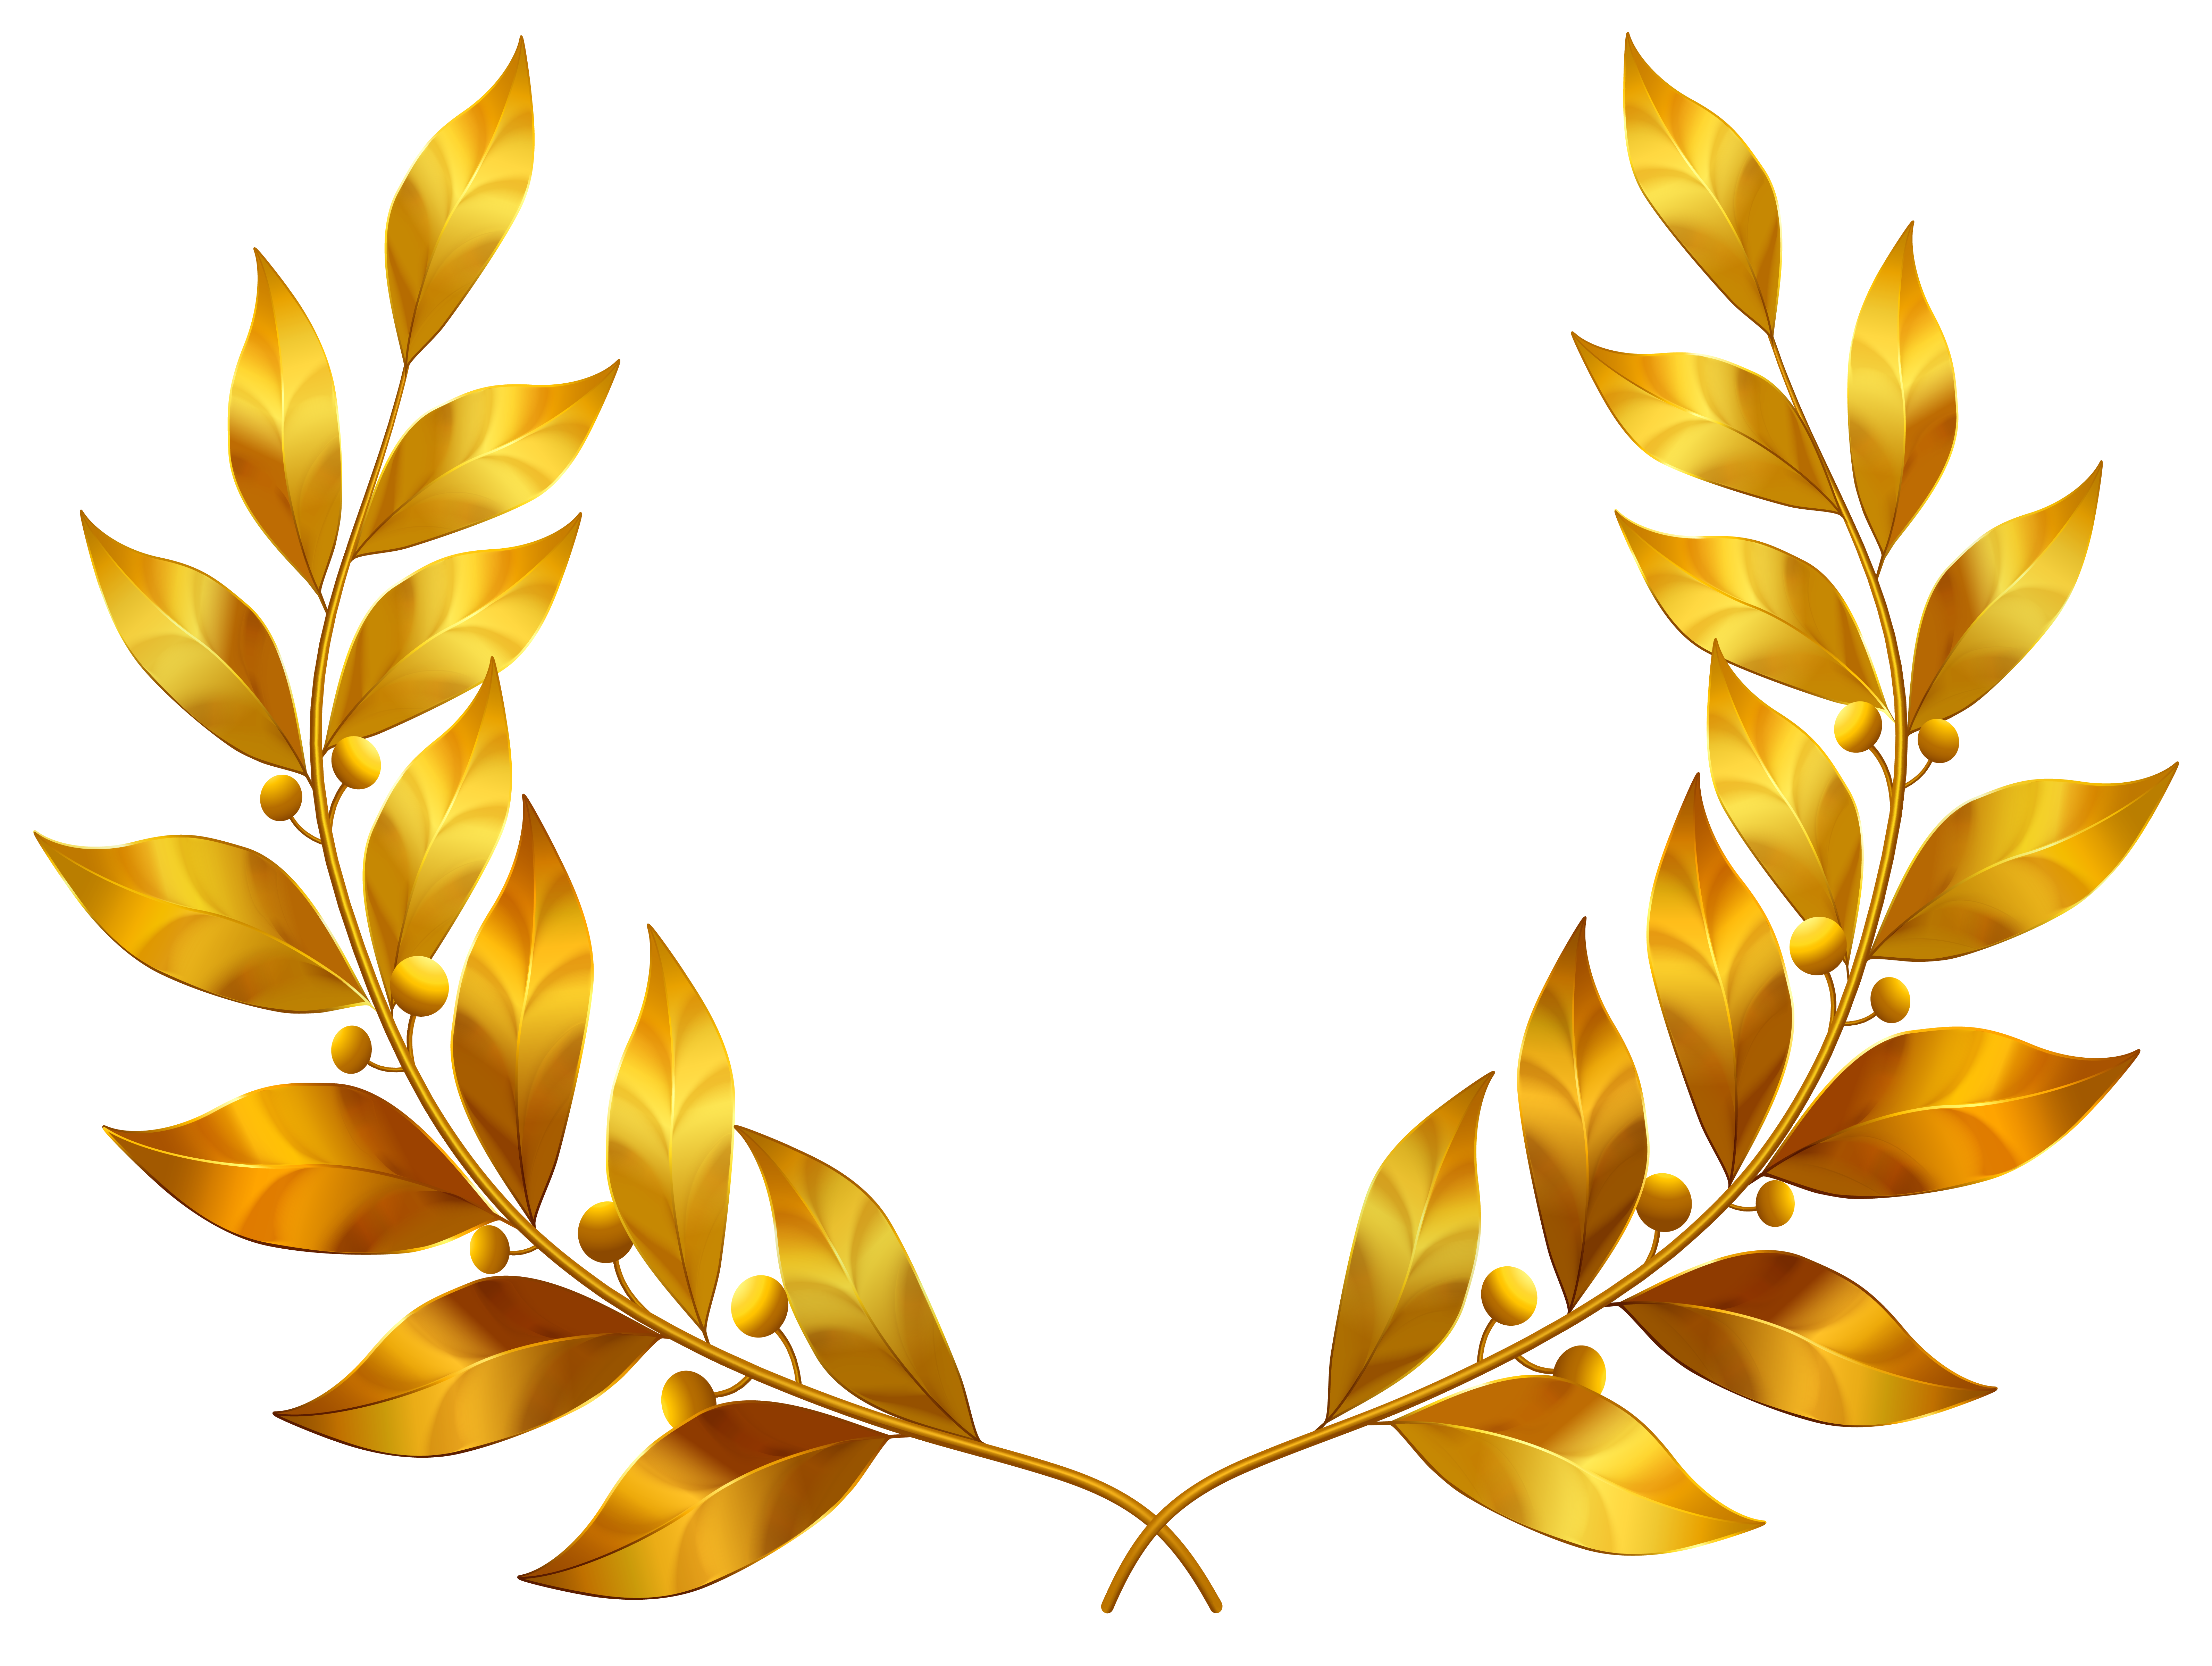 Greek leaves crown clipart image transparent 28+ Collection of Laurel Leaves Clipart   High quality, free ... image transparent